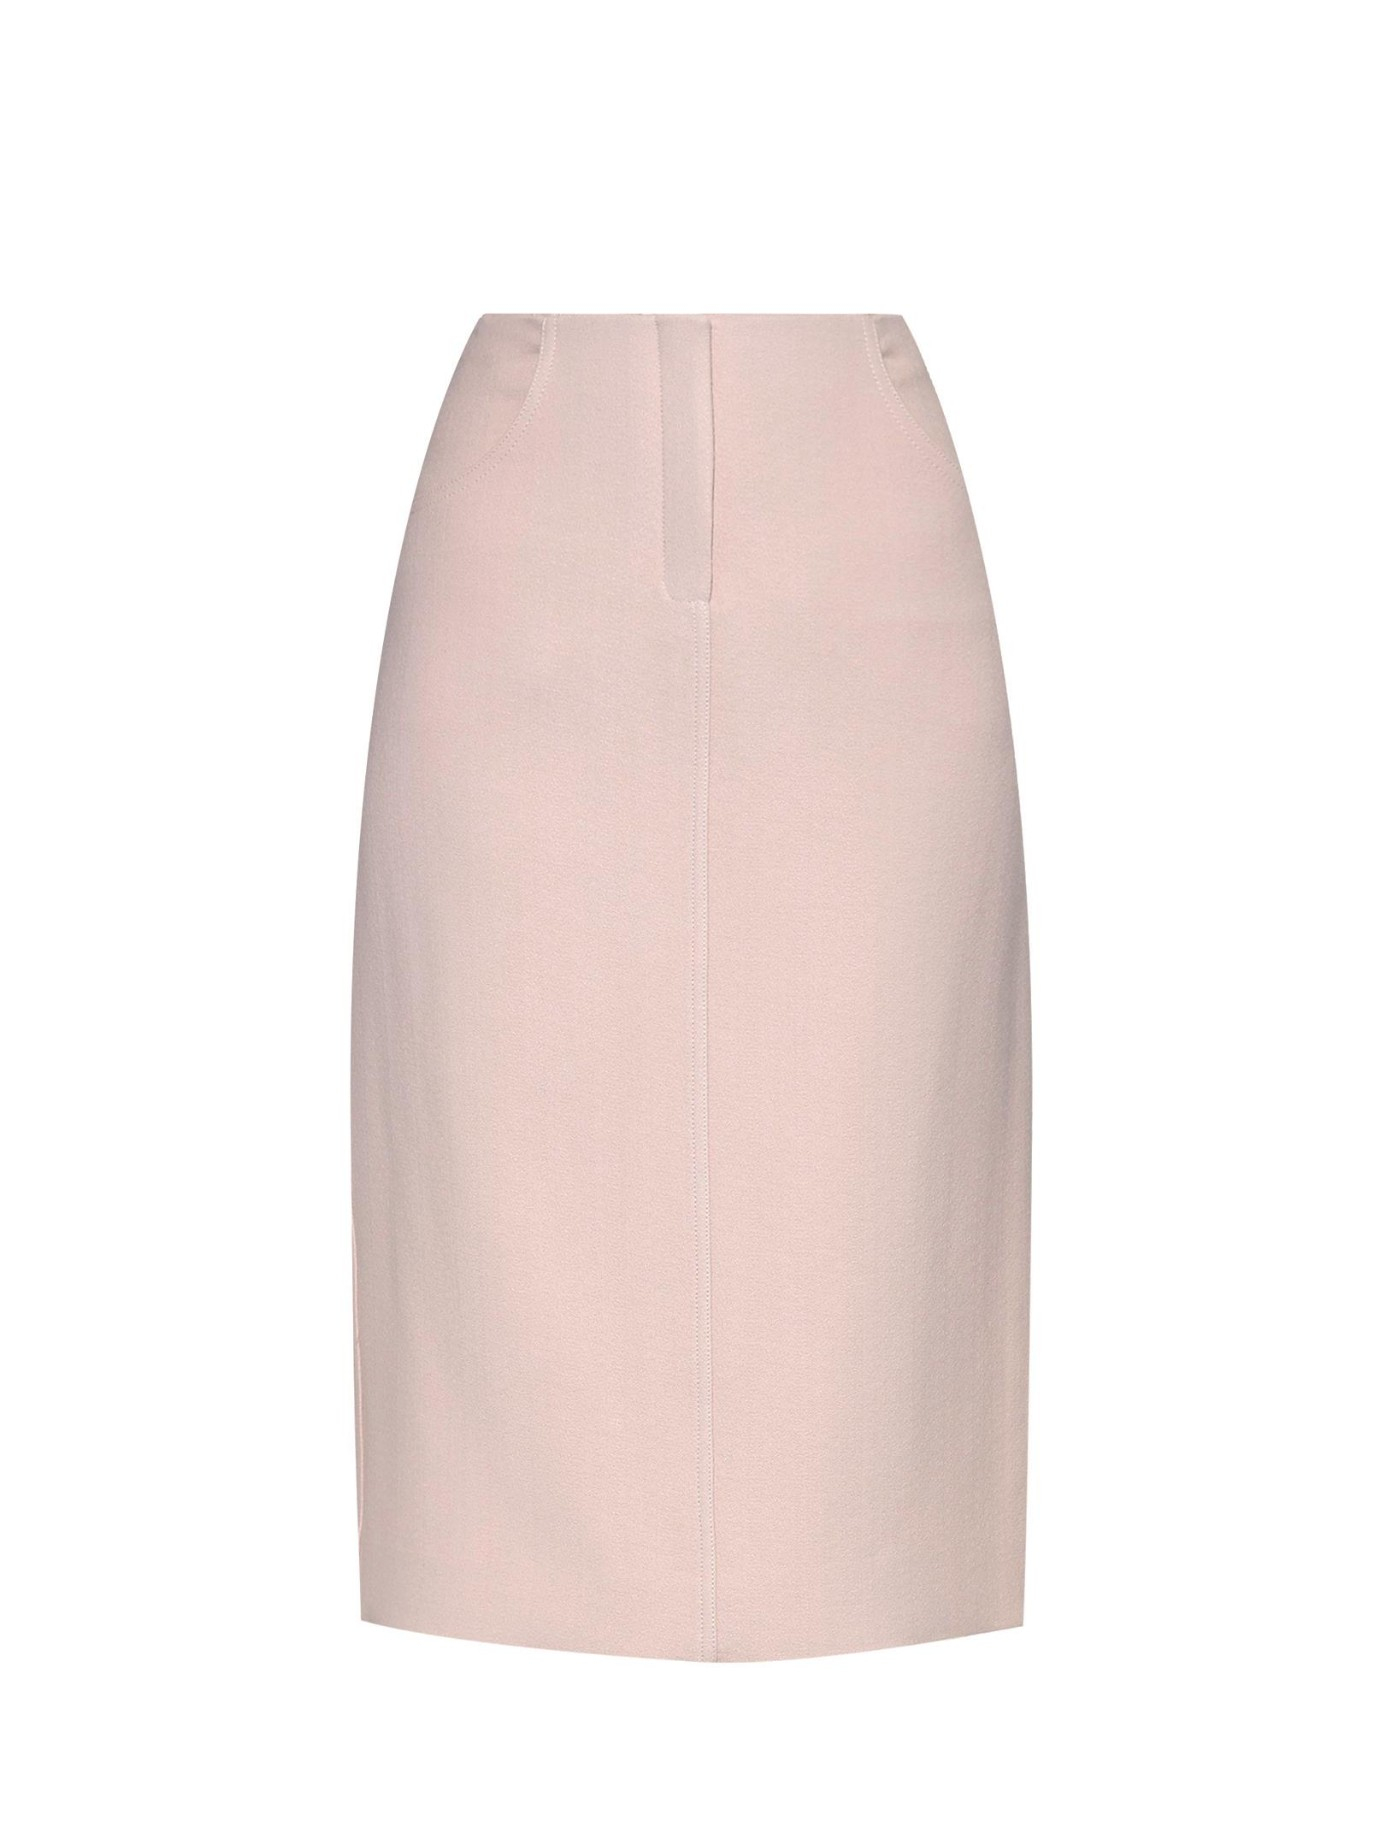 wes gordon marion crepe pencil skirt in pink lyst